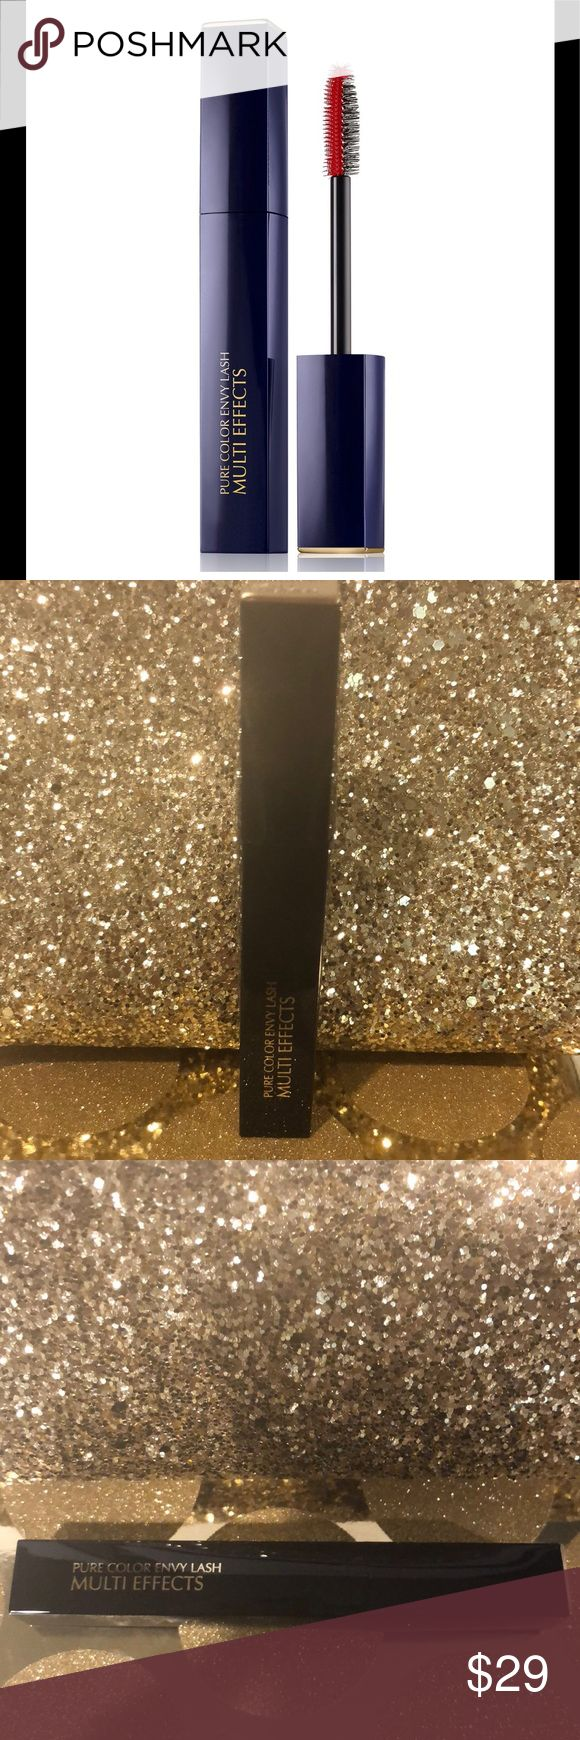 Estee Lauder Pure Color Envy Multi Effects Mascara This exclusive hybrid brush lets you create different lash looks on demand.  The buildable formula means you can dial up the drama throughout the day—and into the night. Conditioning oils keep lashes silky soft, even after you reapply.  NEW & UNUSED.  Awesome mascara one of my favorites!! Thank you for shopping my closet I always give free gifts!!🌸🌸🌸  How to Use: Use the bristle brush for volume and lift. Use the molded brush for length…